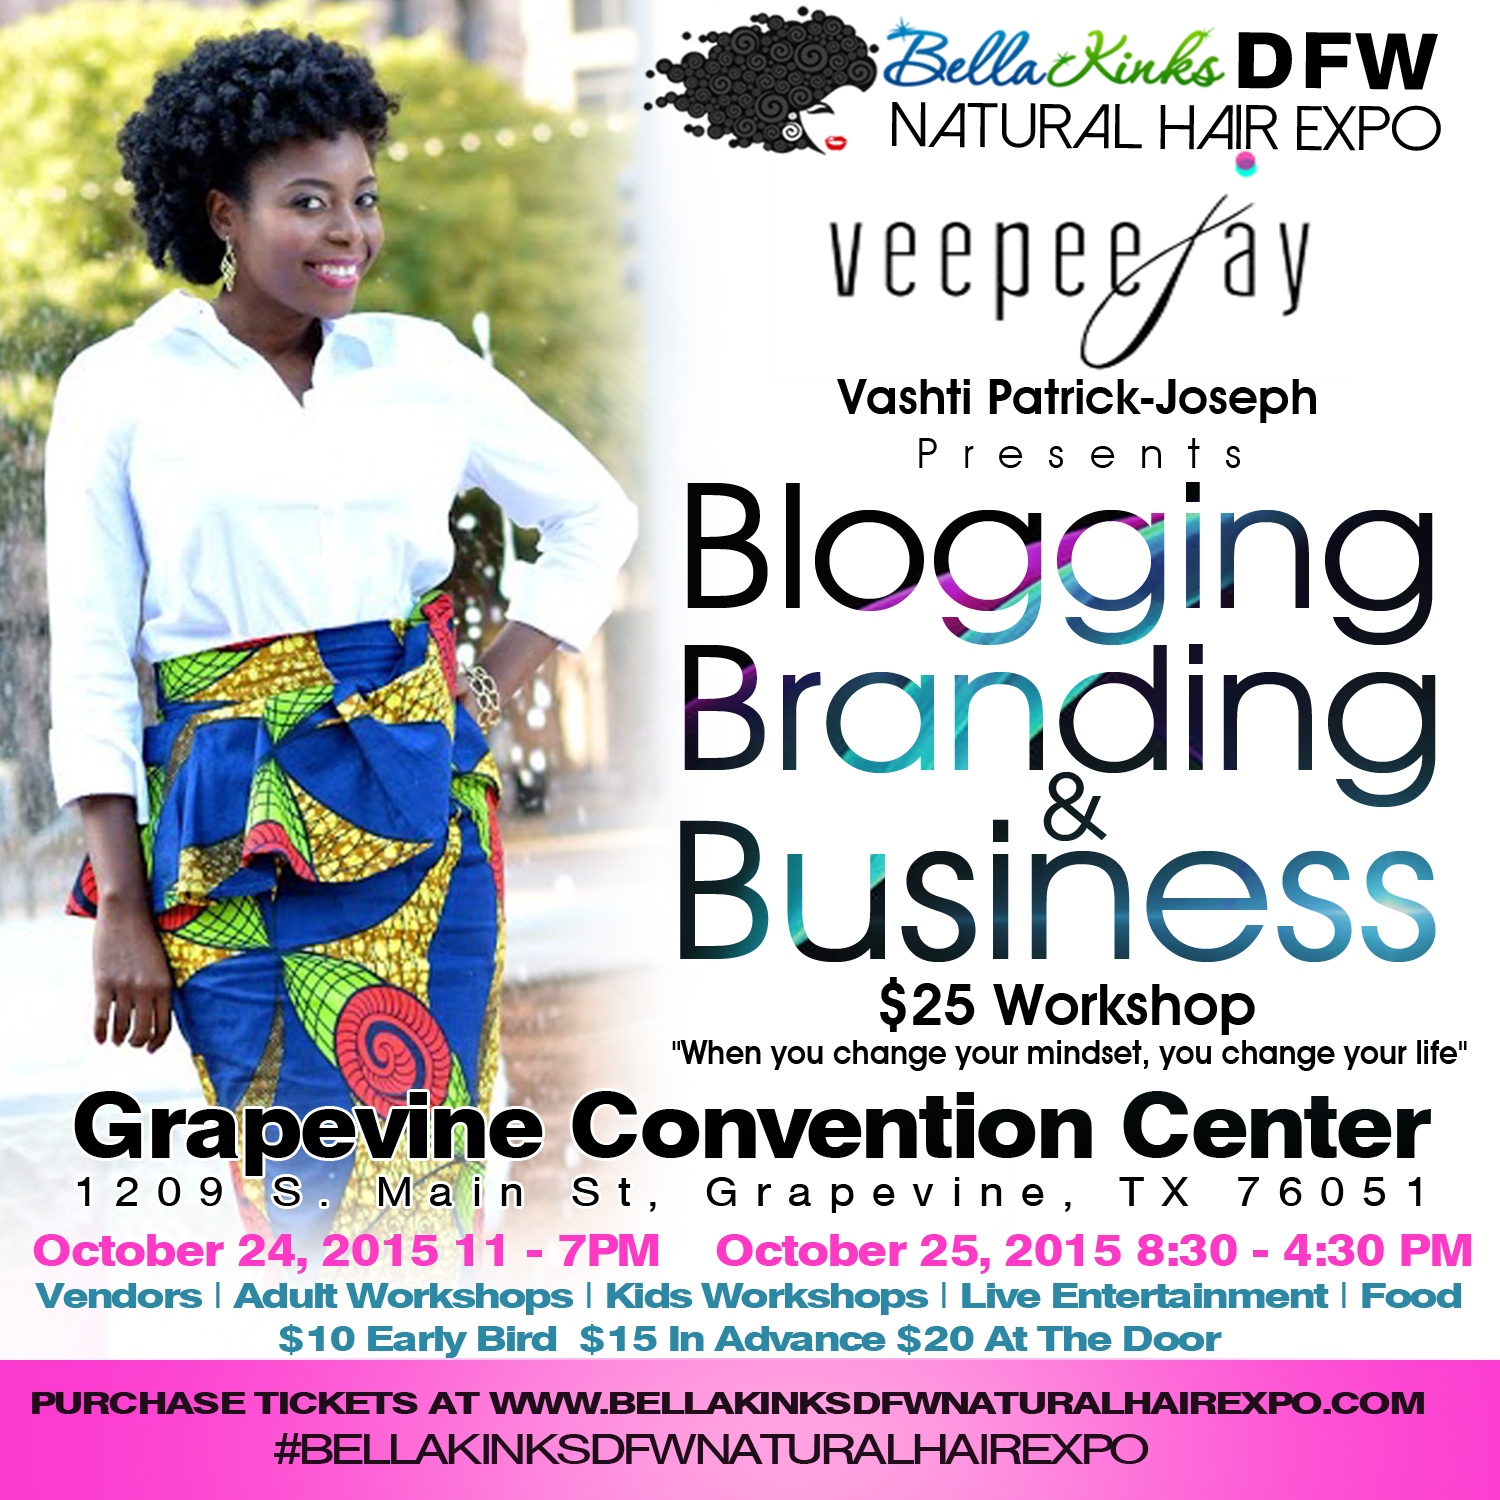 Blogging Branding Business Workshop - VeePeeJay